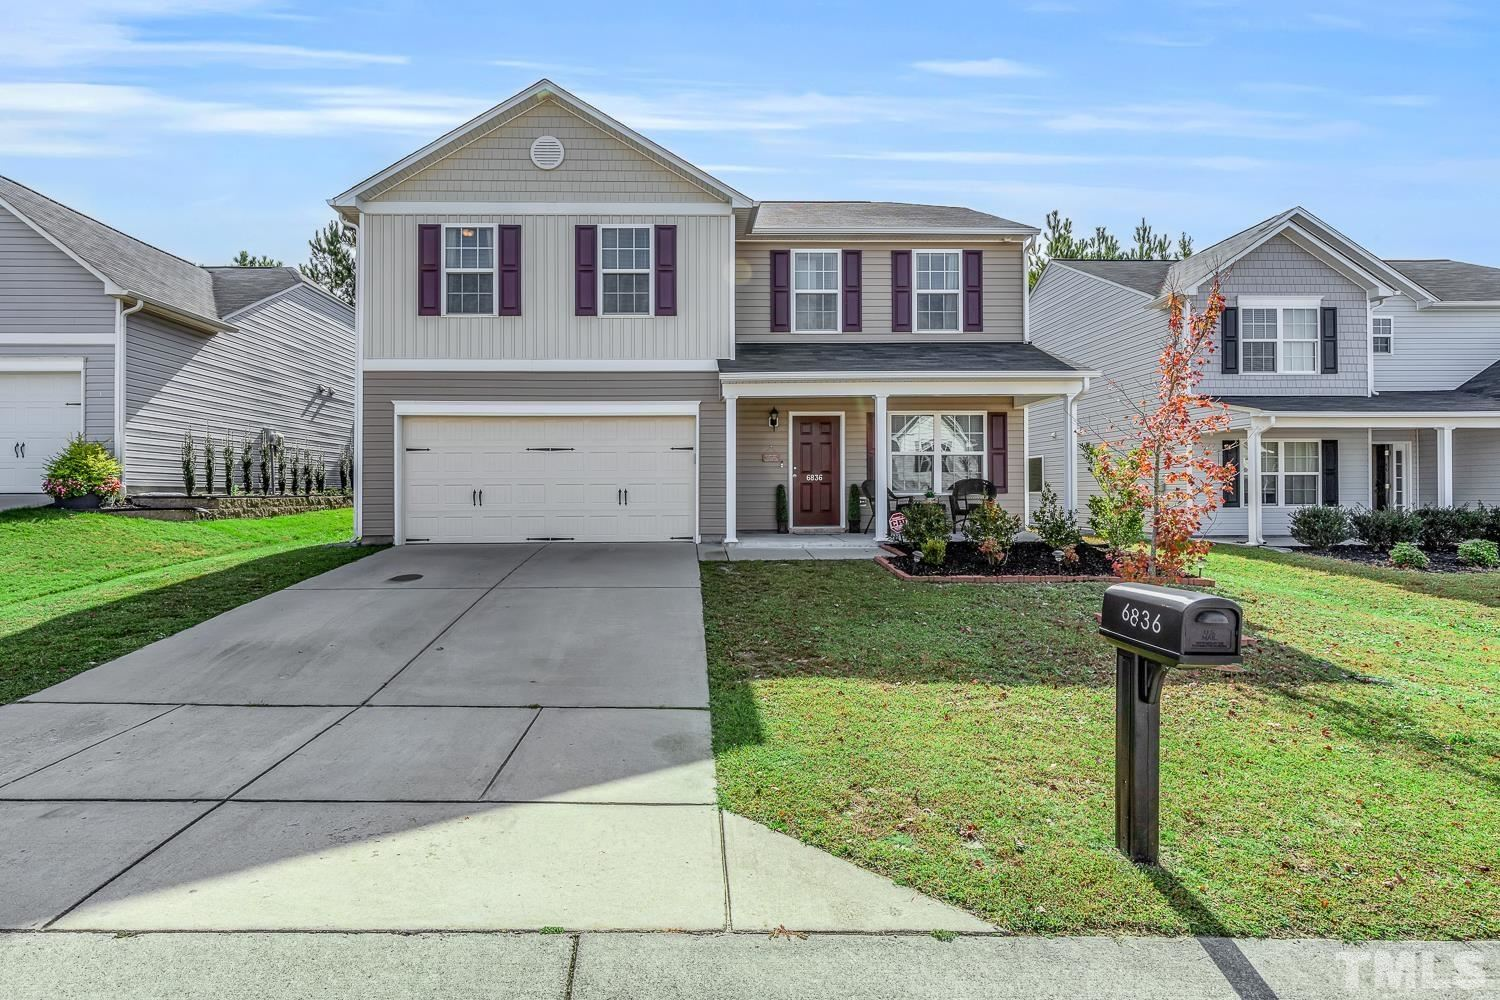 Photo of 6836 Planting Court, Raleigh, NC 27610 (MLS # 2415548)